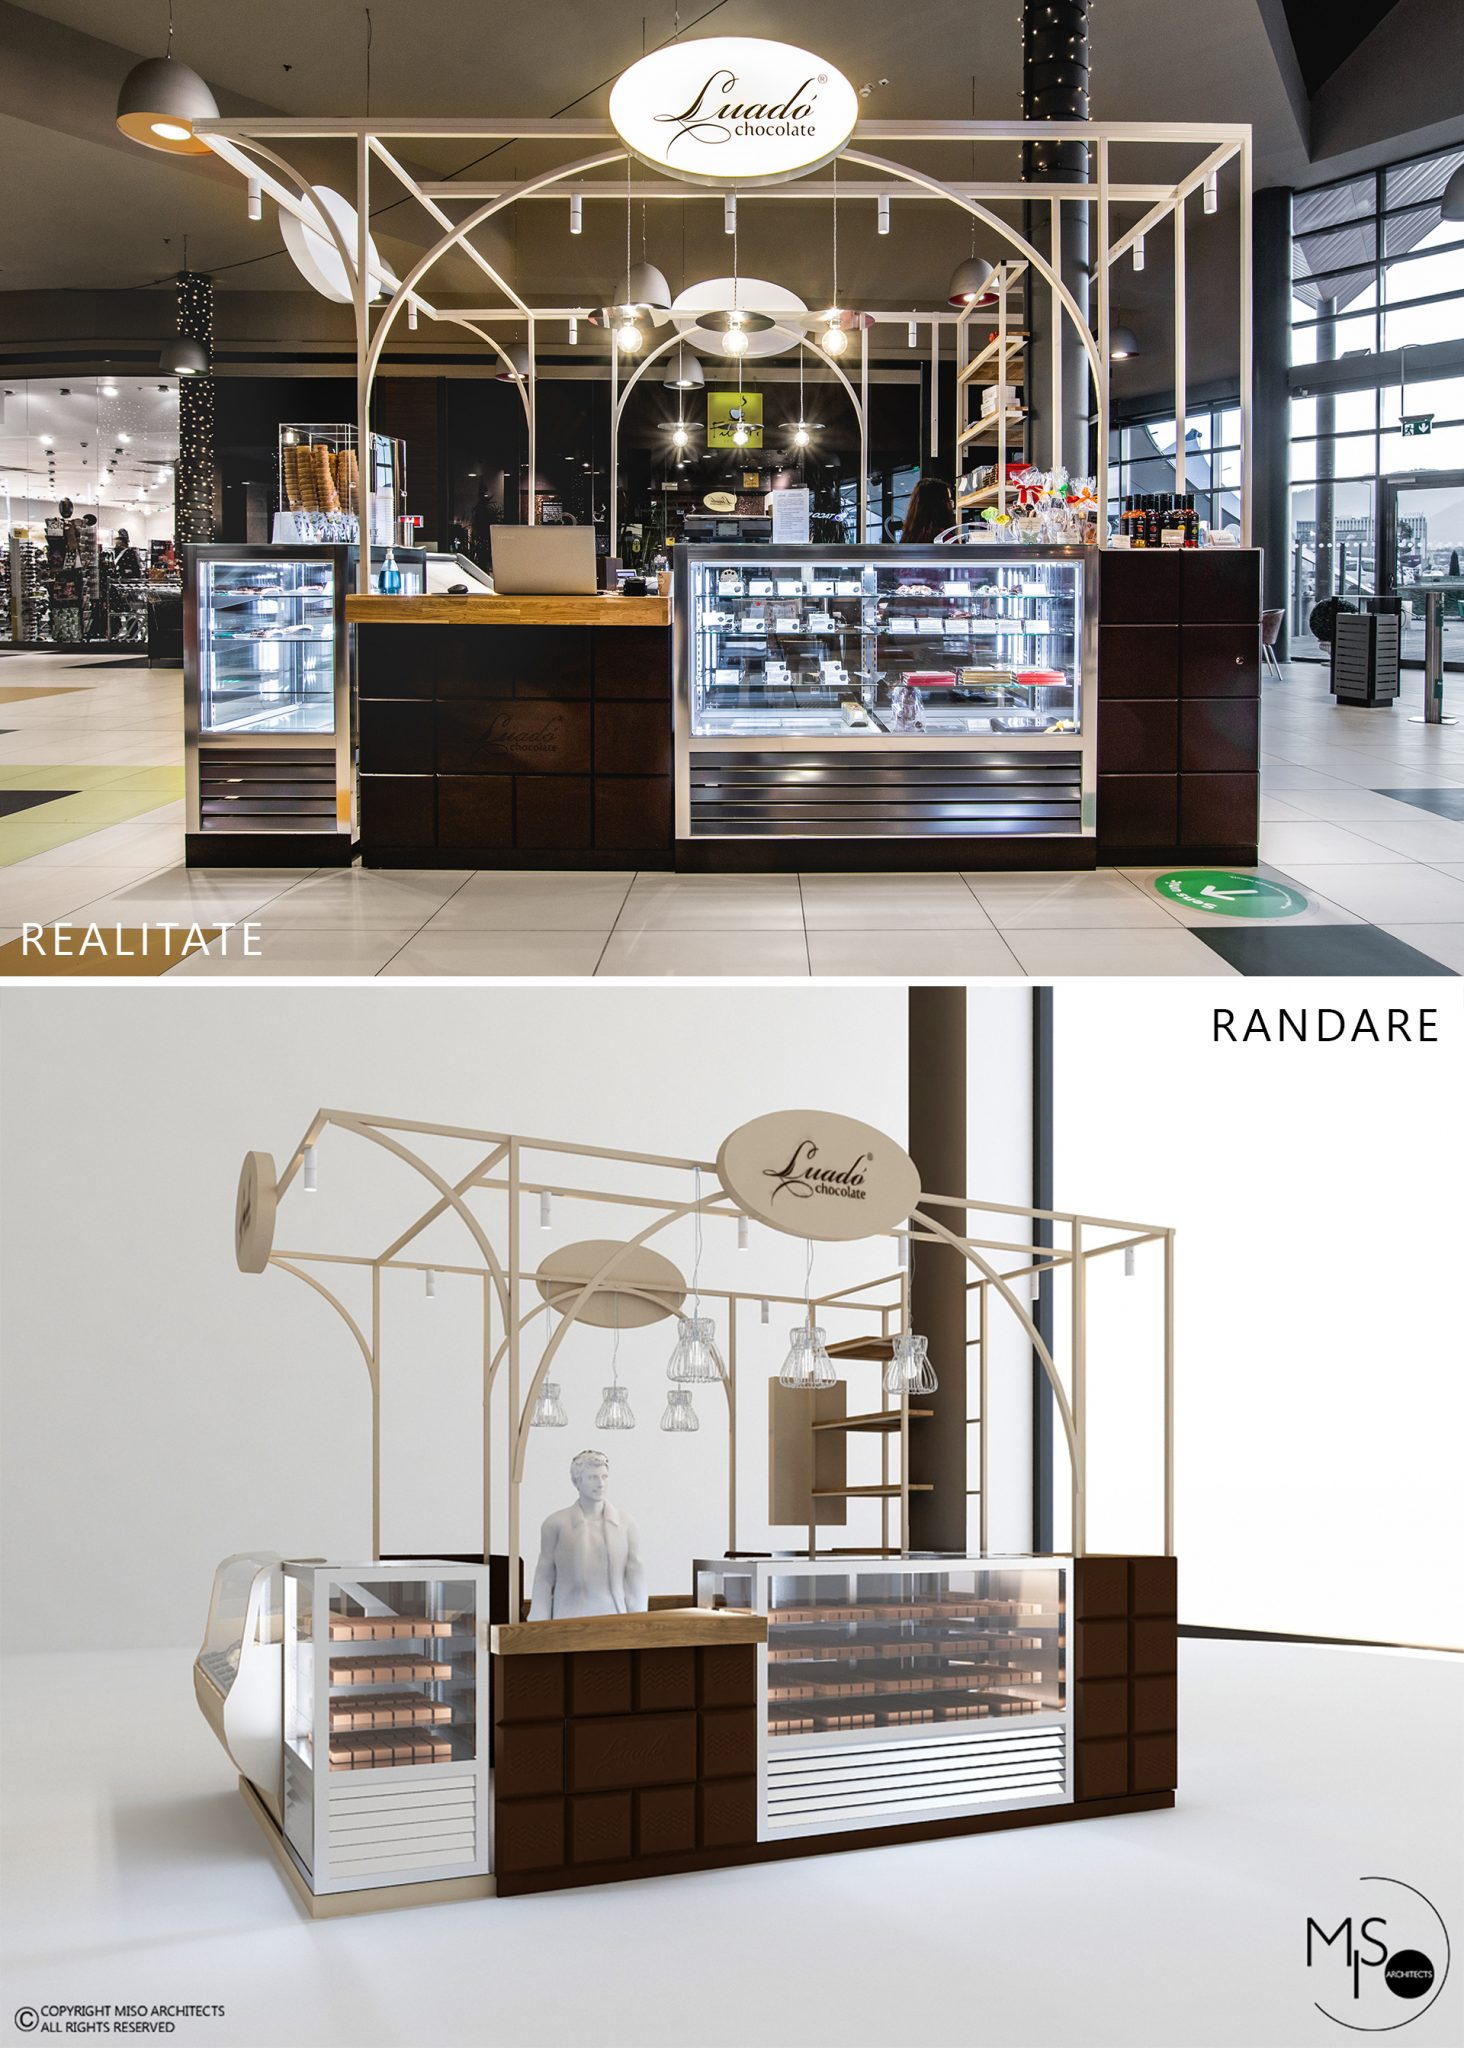 before-after-proiect-3D-insula-mall-scaled.jpg